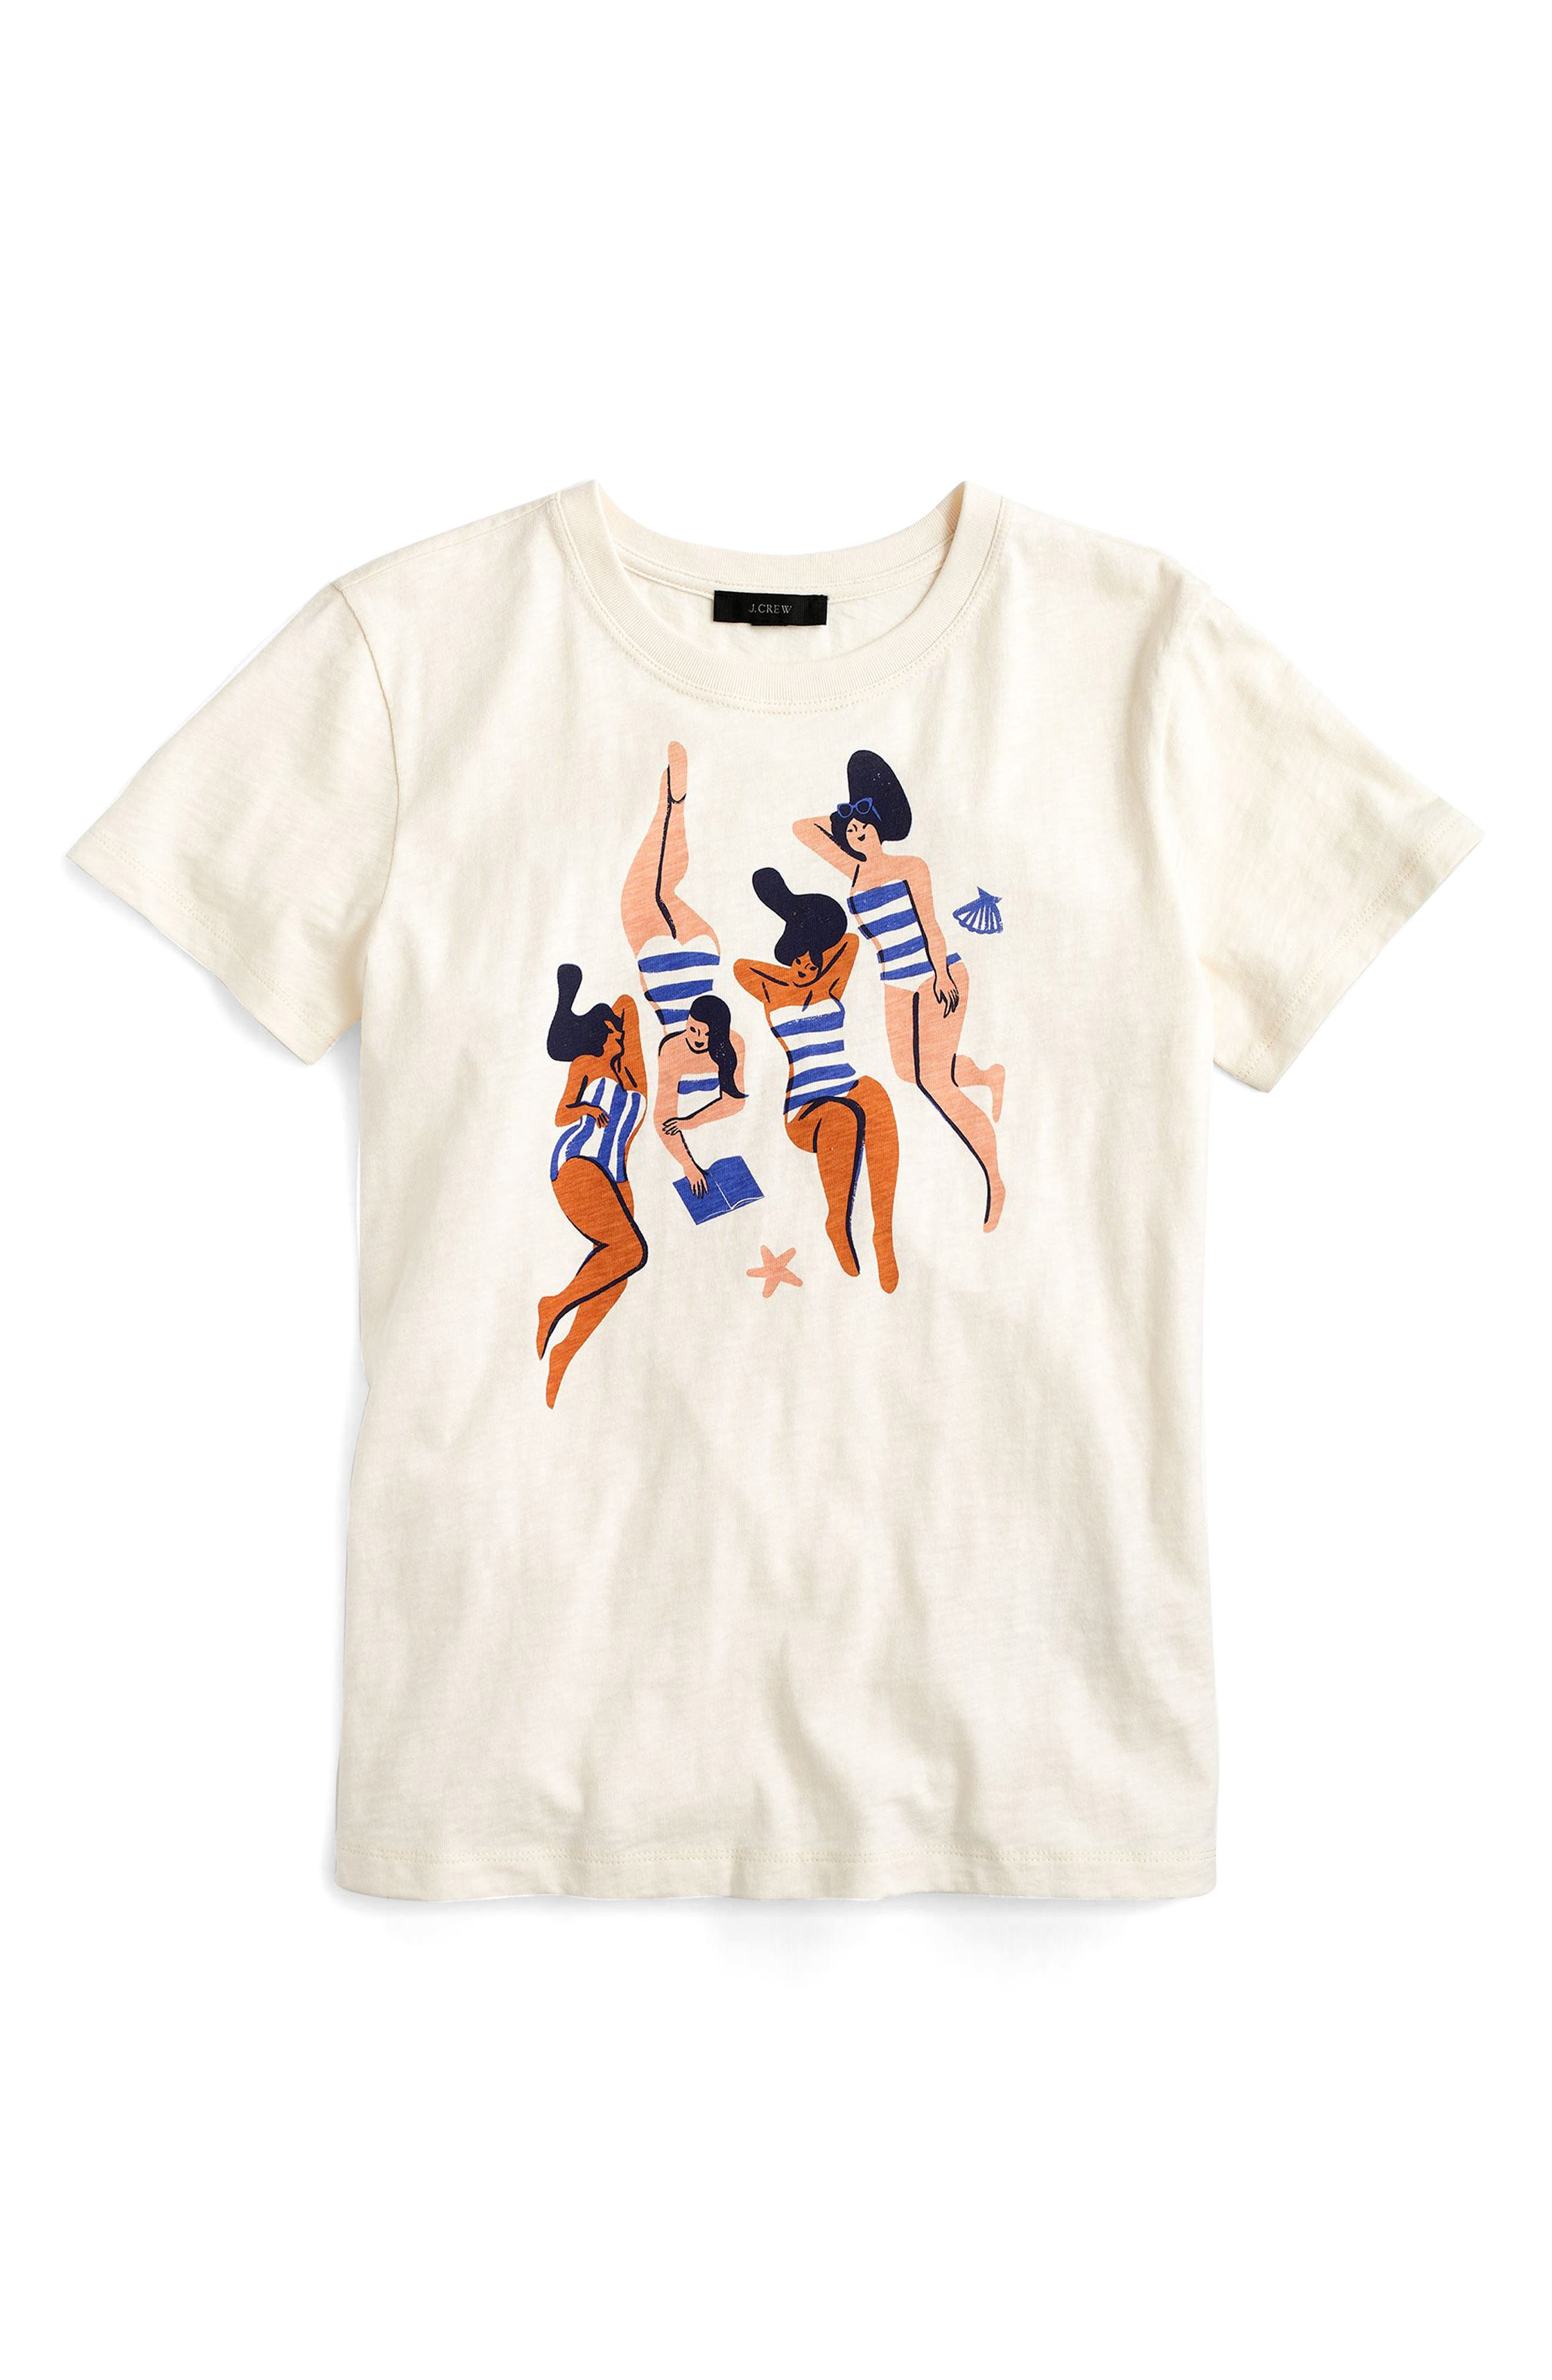 Virginie Morgand x J.Crew Sunbathers Graphic Tee,                         Main,                         color, Washed Sand